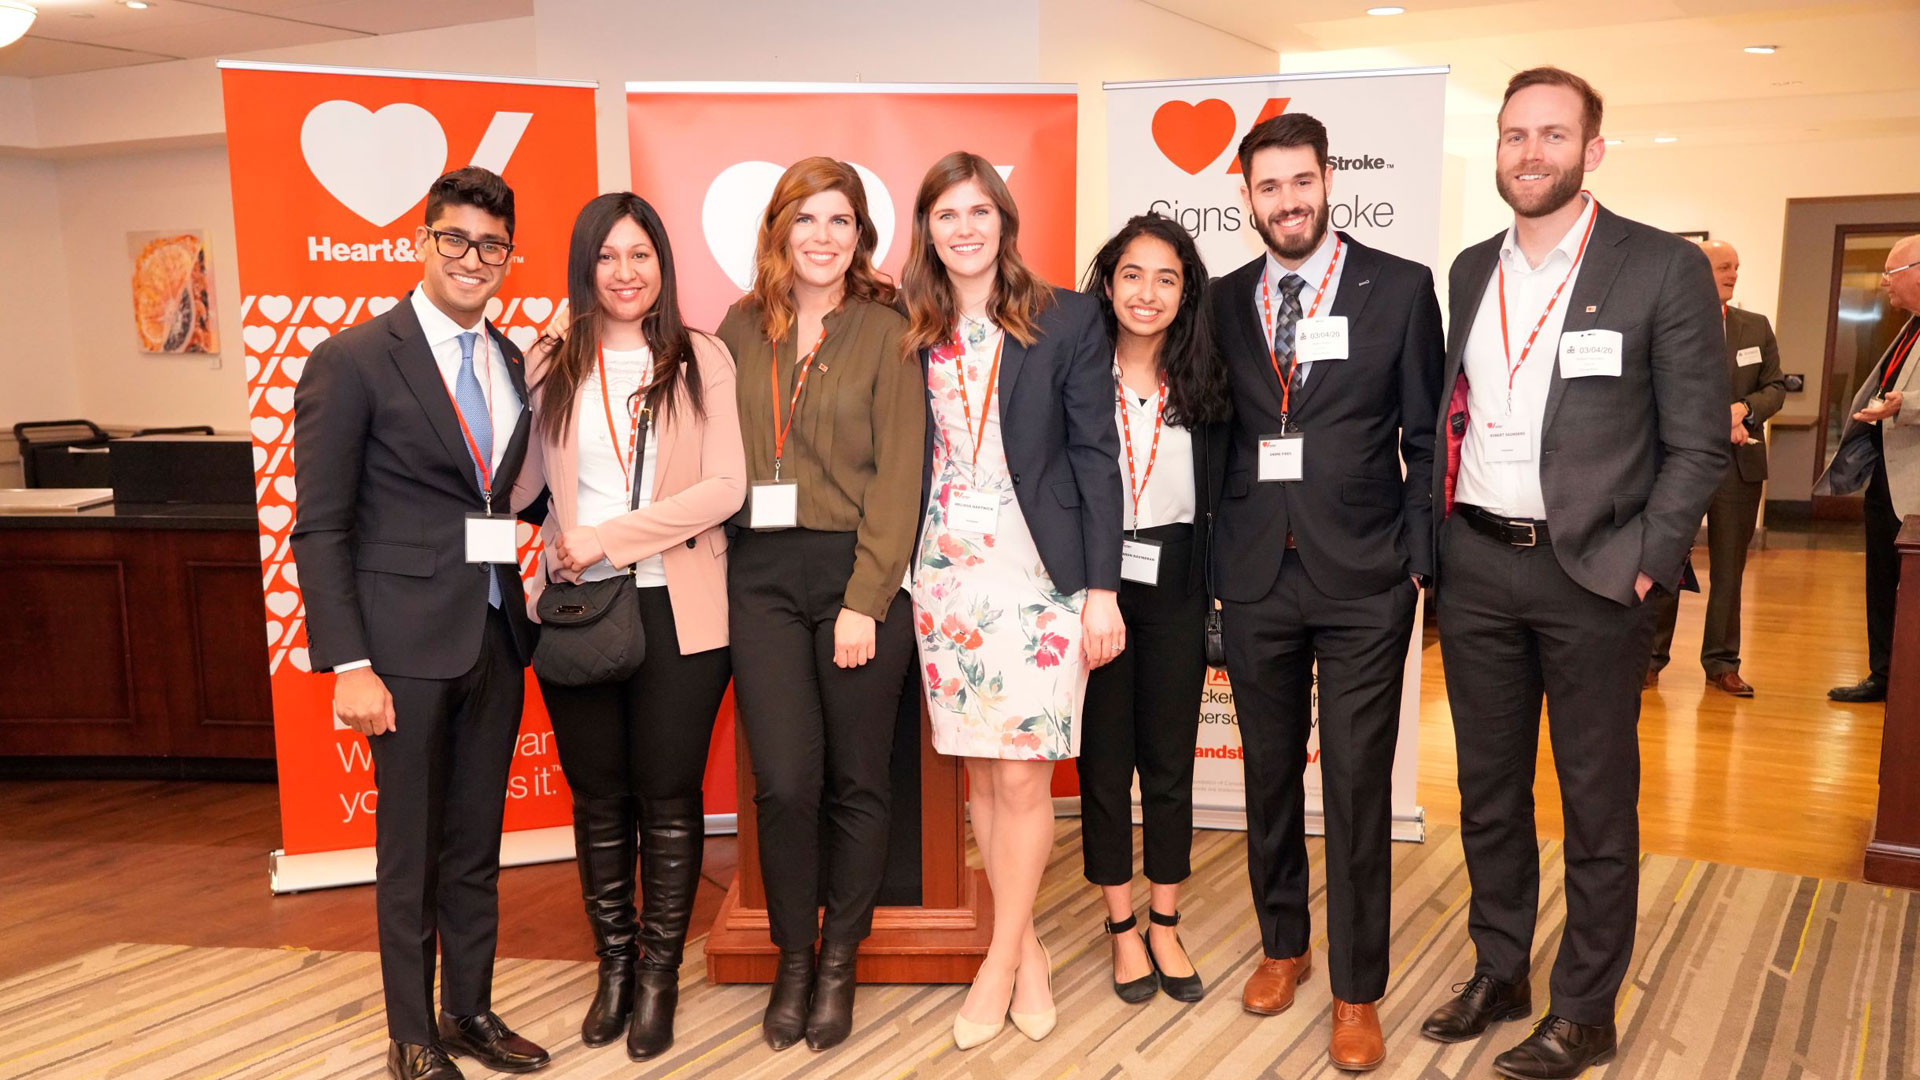 The Heart & Stroke Young Leaders committee at an event